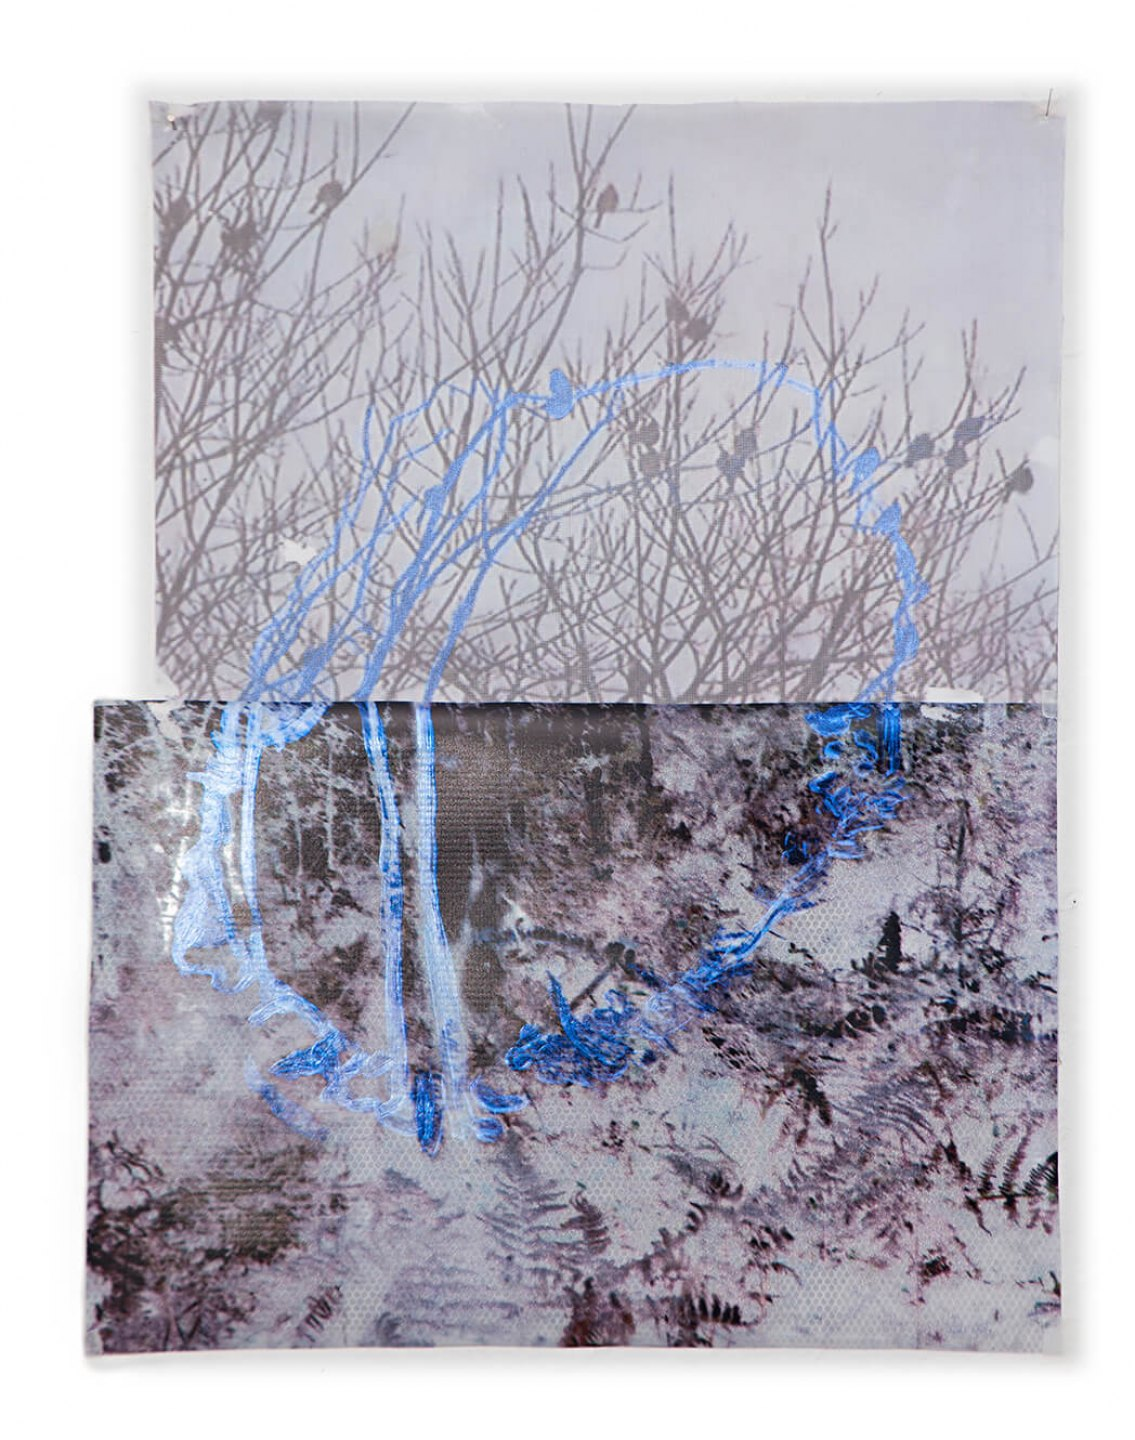 Marina Perez Simão, <em>Untitled,</em>&nbsp;2013, acrylic on plastic, plyester and printing on reflexive paper, 64,5&nbsp;× 50 cm&nbsp; - Mendes Wood DM